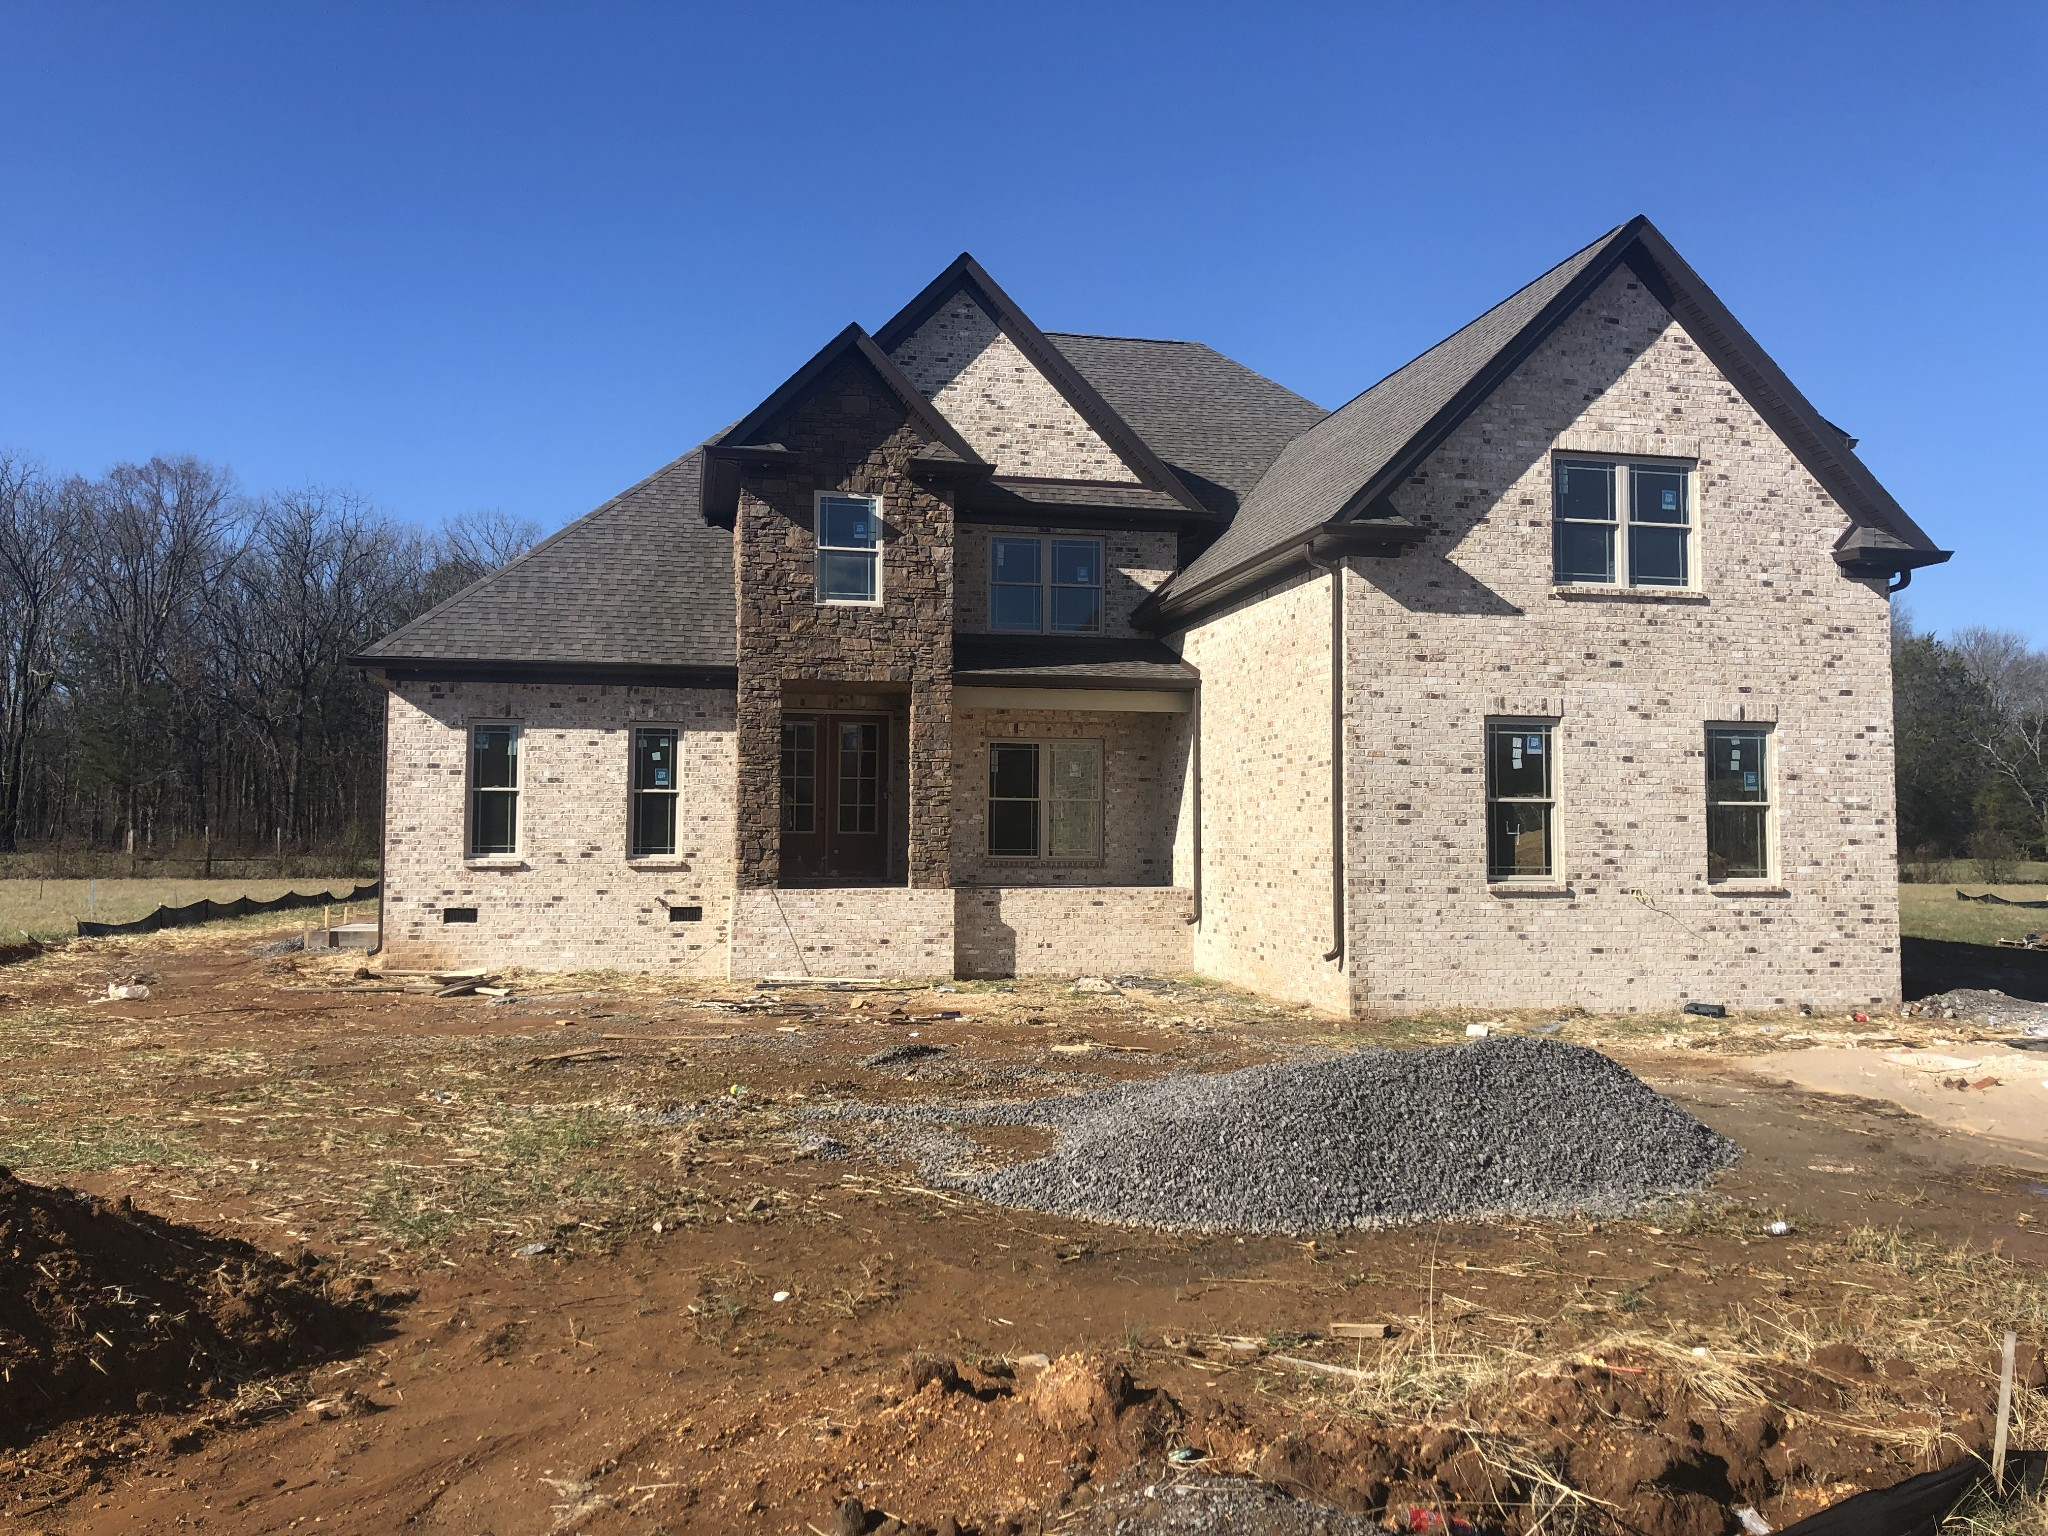 4325 Colibri Way, NE, Murfreesboro, TN 37130 - Murfreesboro, TN real estate listing